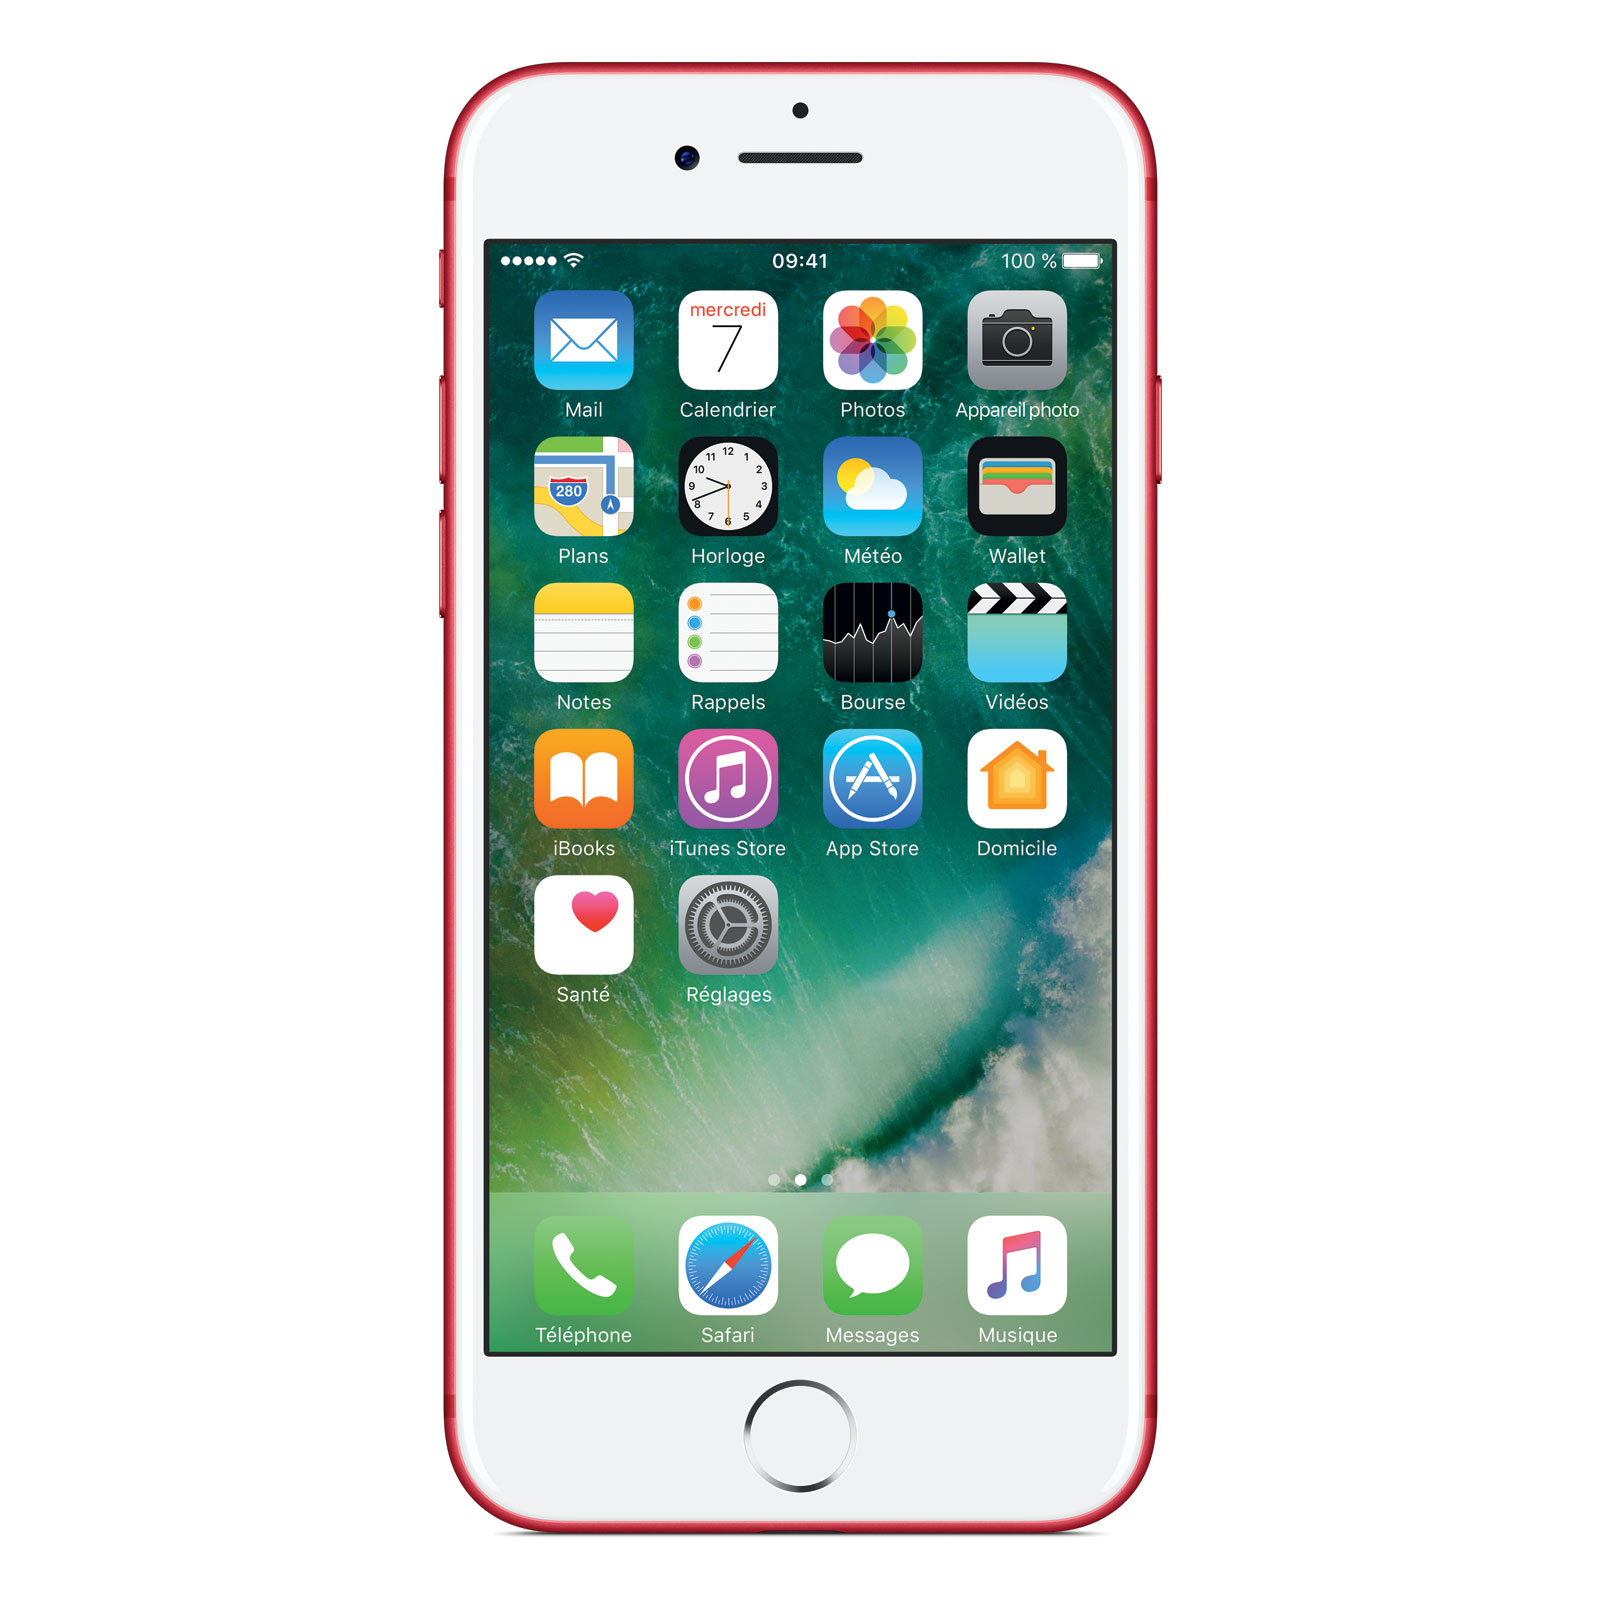 "Mobile & smartphone Apple iPhone 7 256 Go Rouge Special Edition Smartphone 4G-LTE Advanced IP67 - Apple A10 Fusion Quad-Core 2.3 GHz - RAM 2 Go - Ecran Retina 4.7"" 750 x 1334 - 256 Go - NFC/Bluetooth 4.2 - iOS 10"